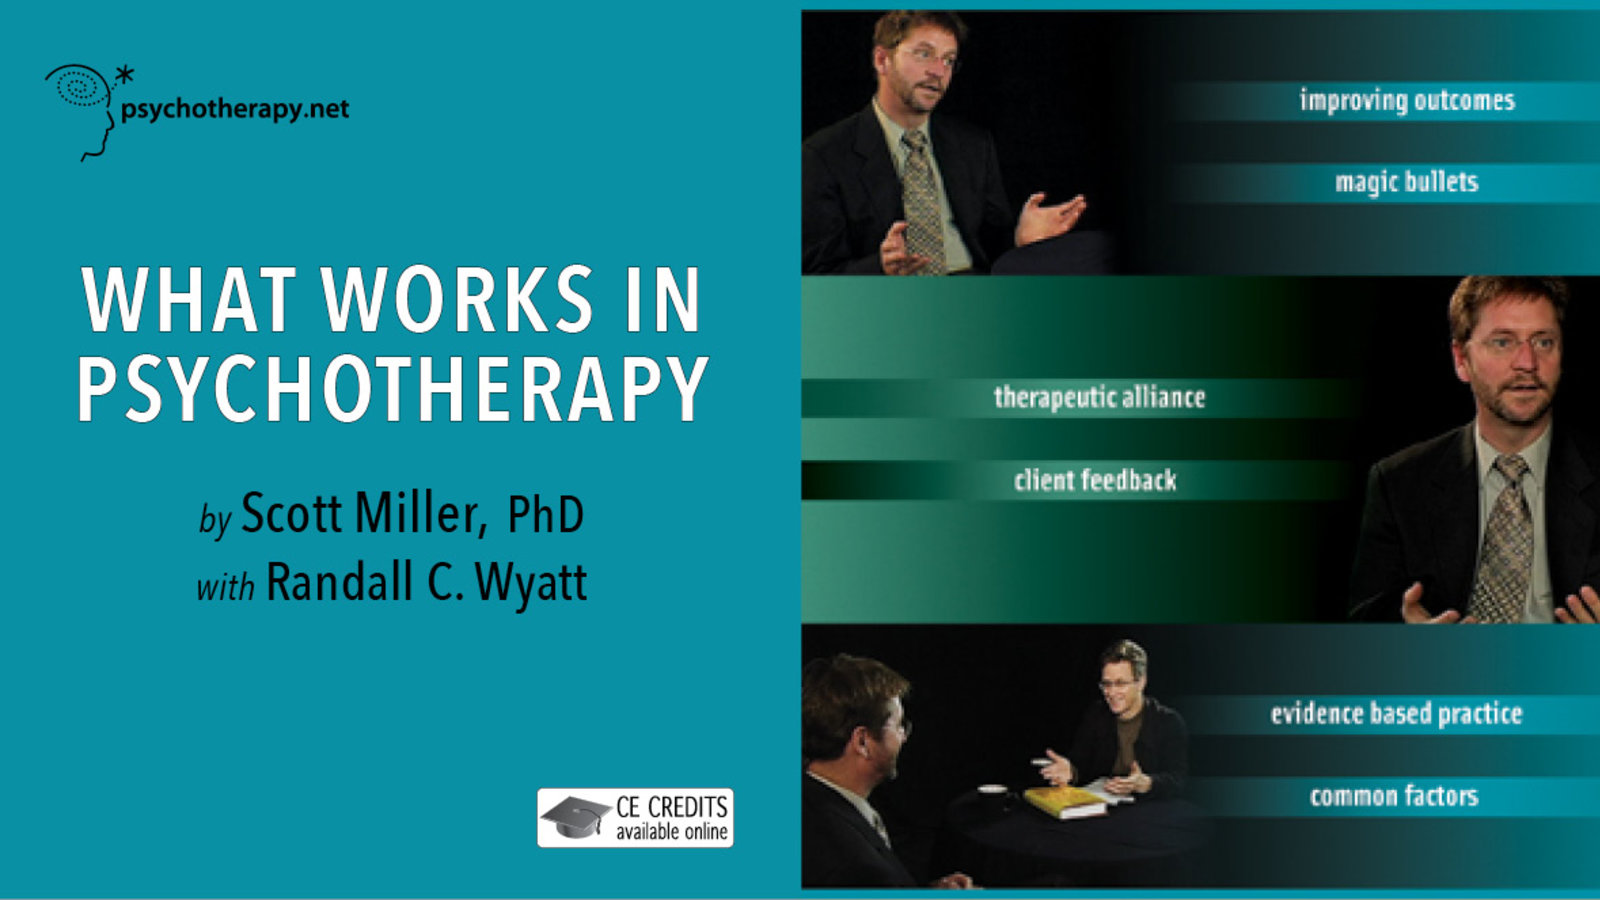 What Works in Psychotherapy - With Scott Miller